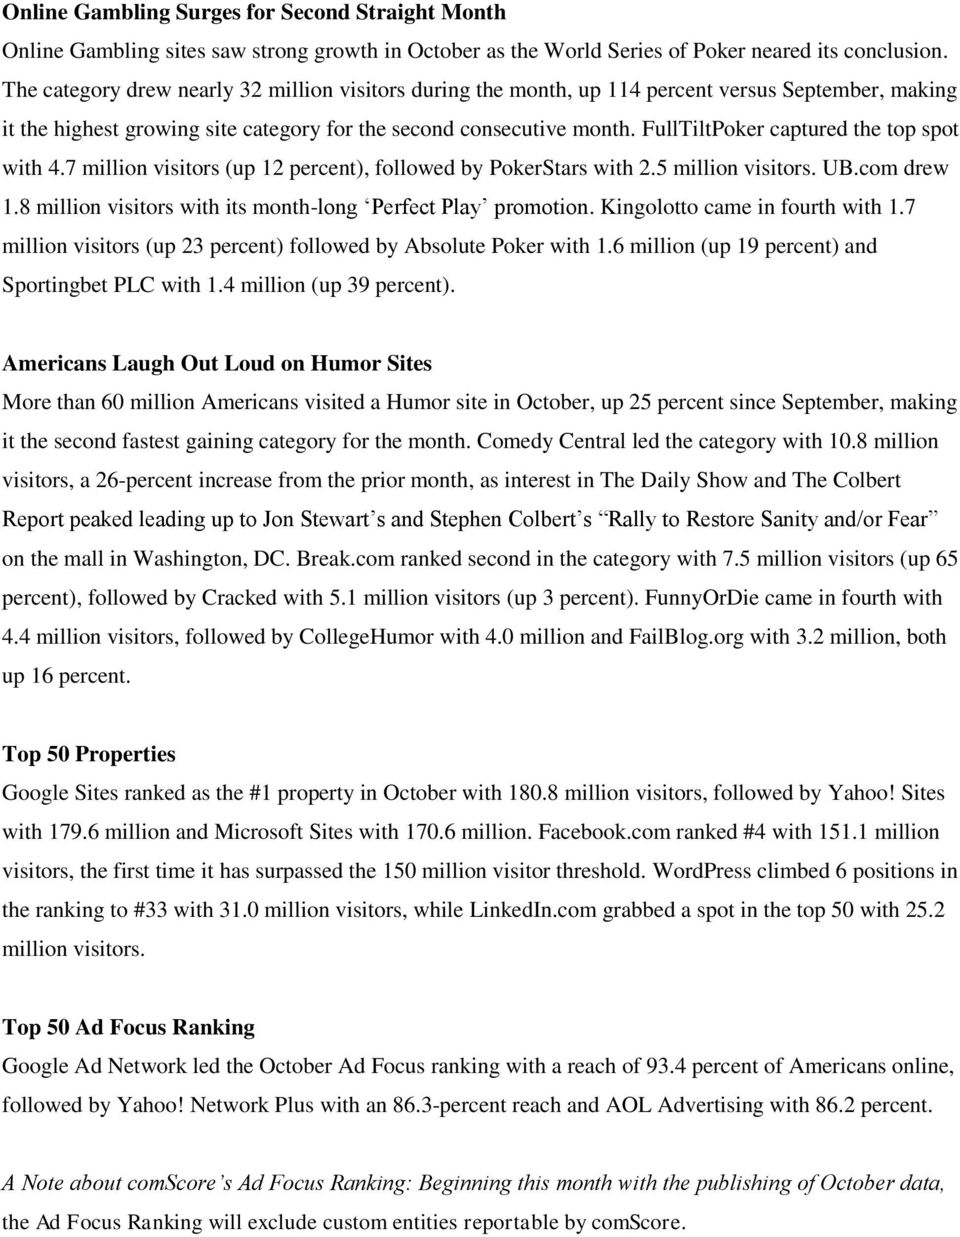 FullTiltPoker captured the top spot with 4.7 million visitors (up 12 percent), followed by PokerStars with 2.5 million visitors. UB.com drew 1.